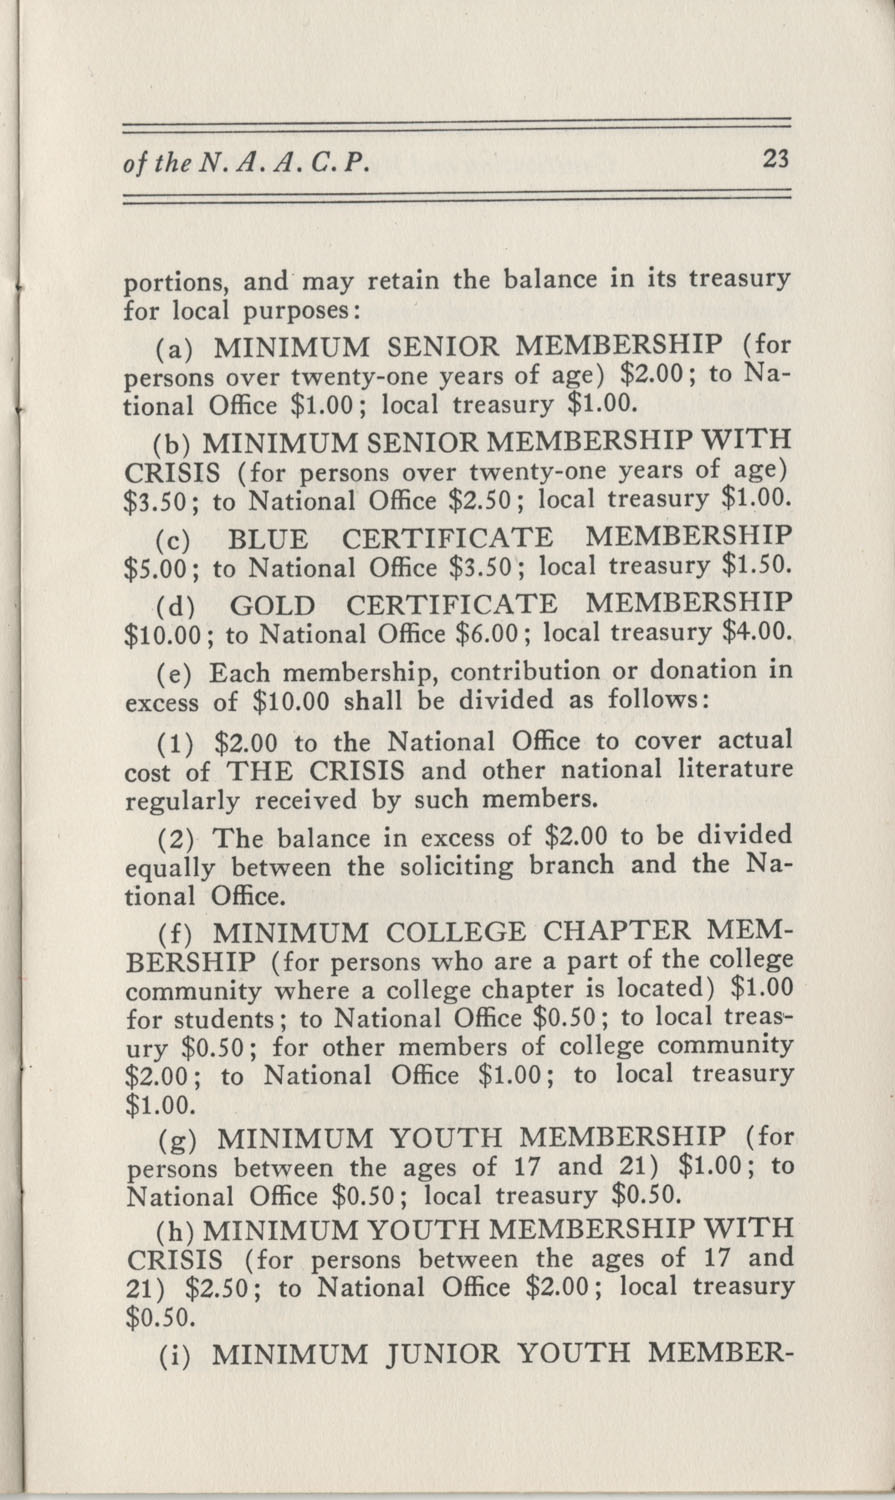 Constitutions and By-Laws, September 1960, Page 23